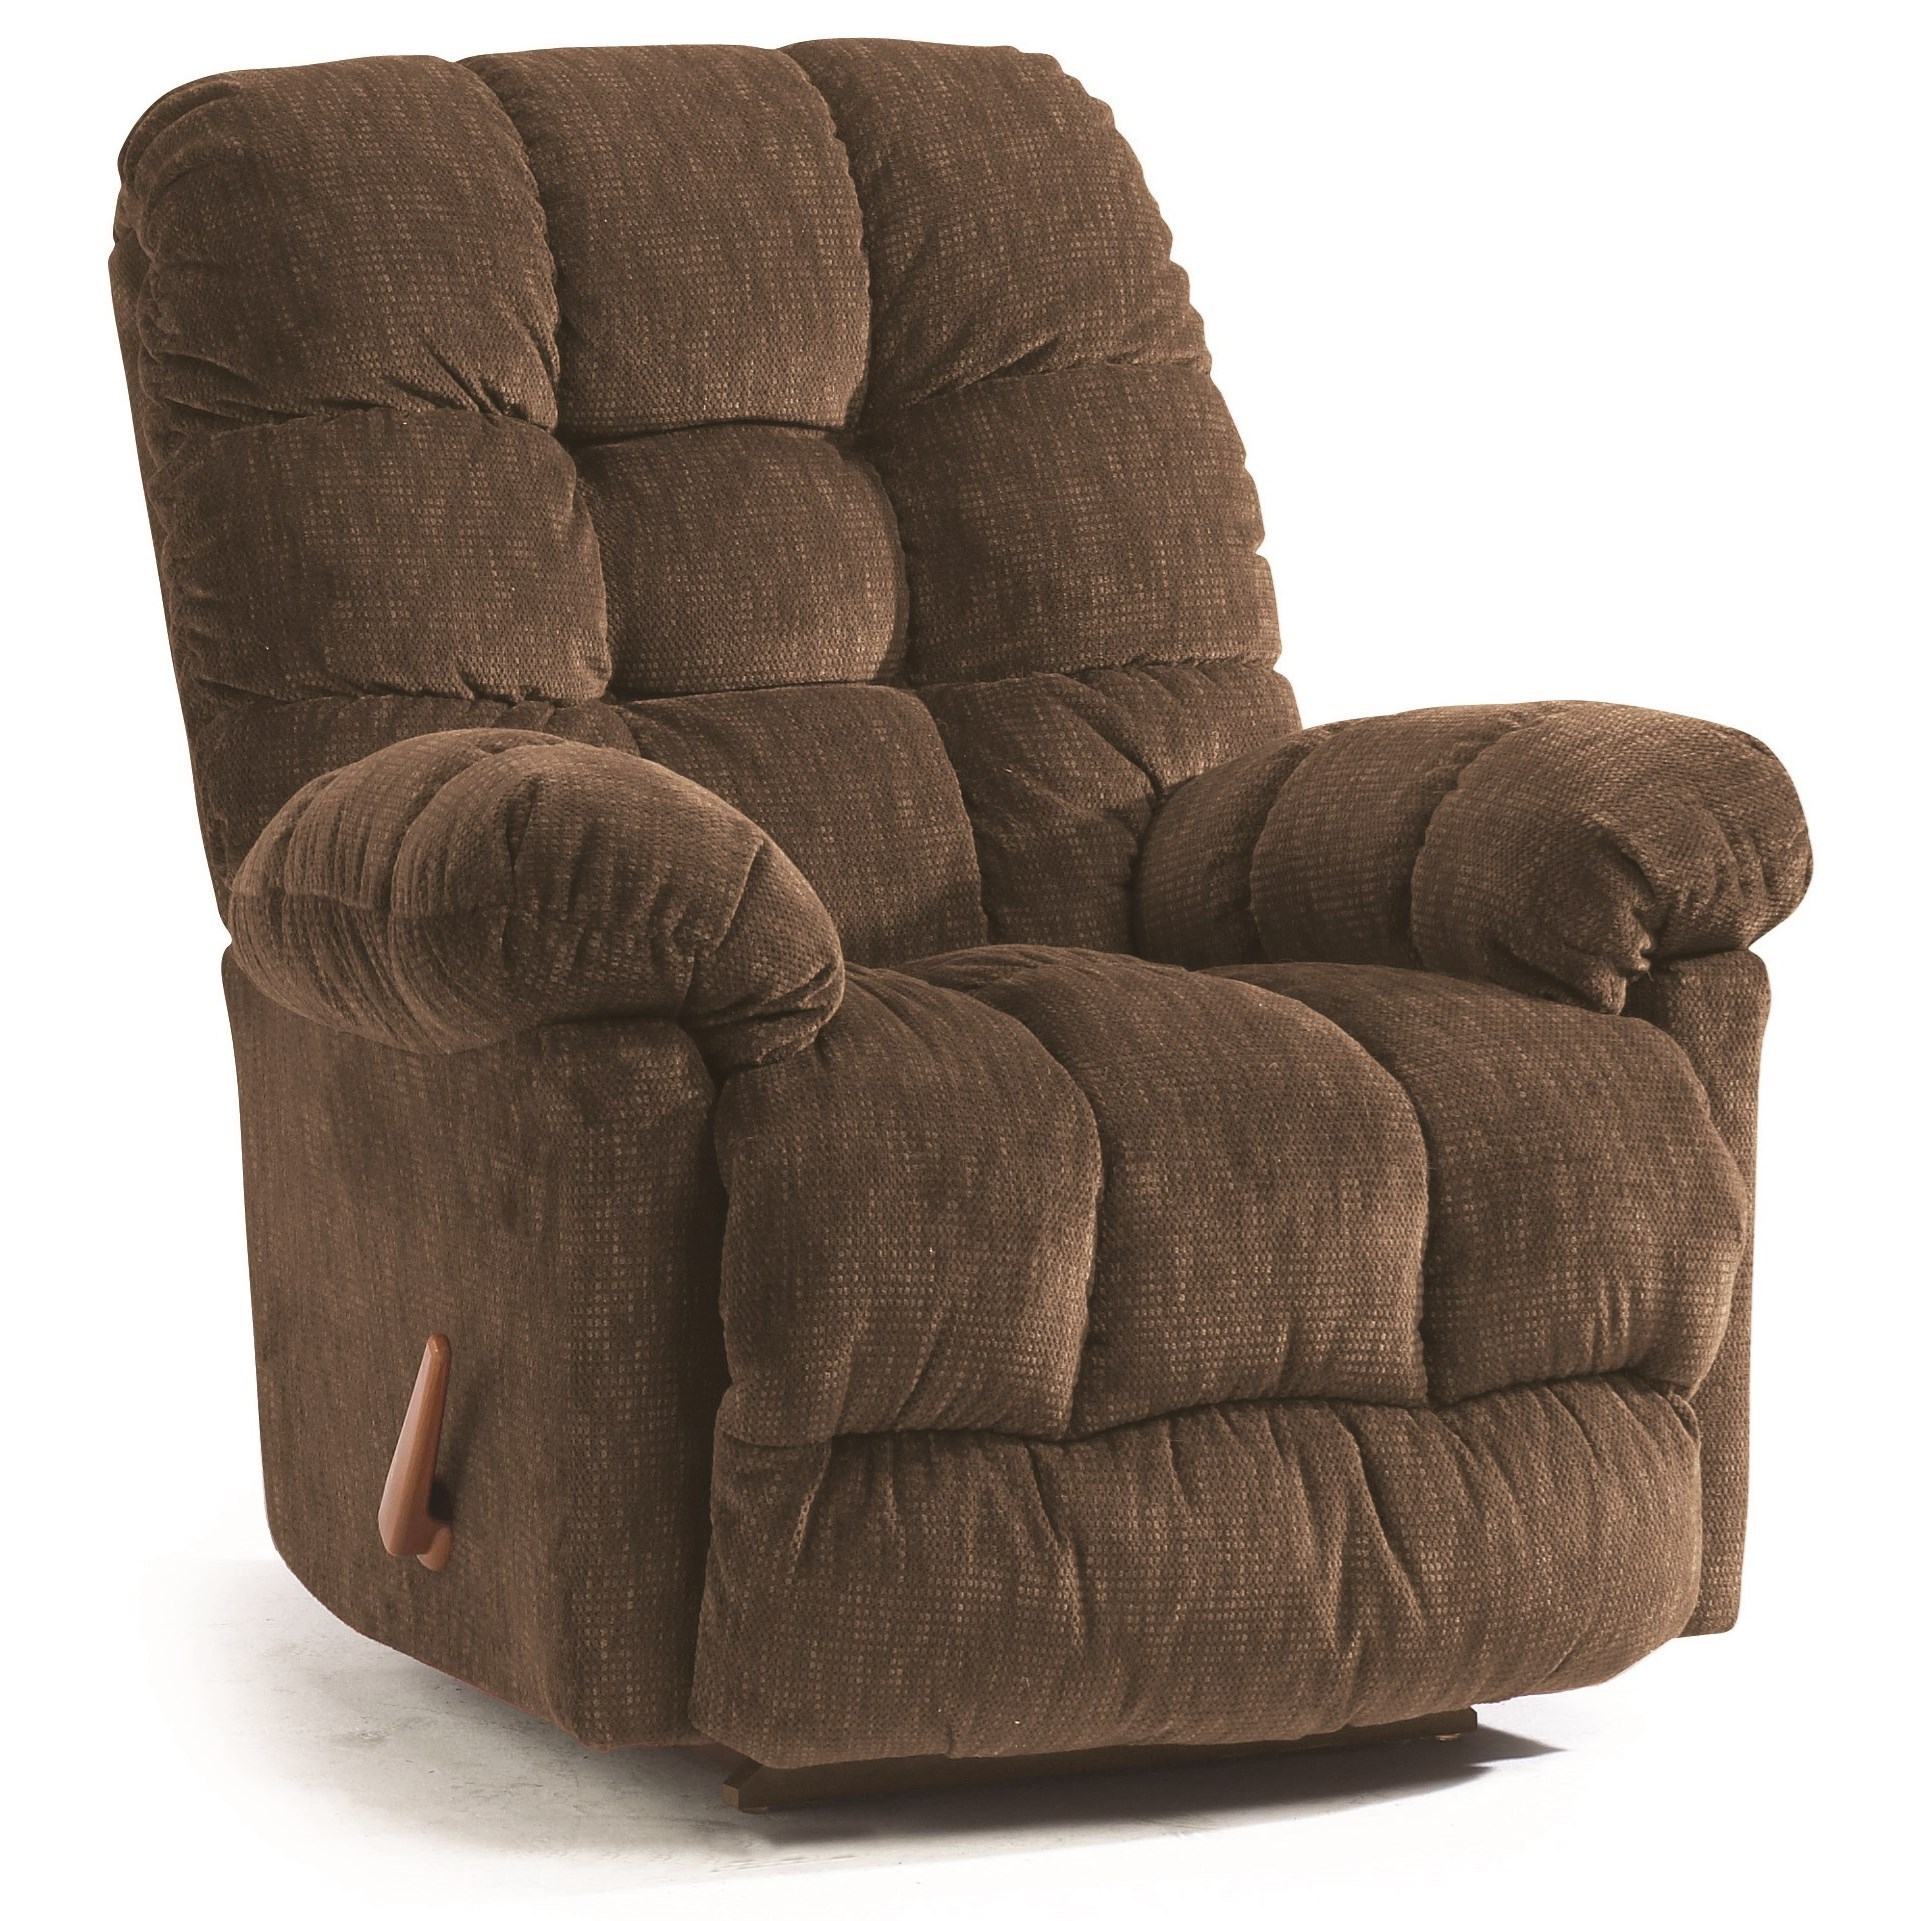 Best Home Furnishings Recliners Medium 9mw85 1 Brosmer